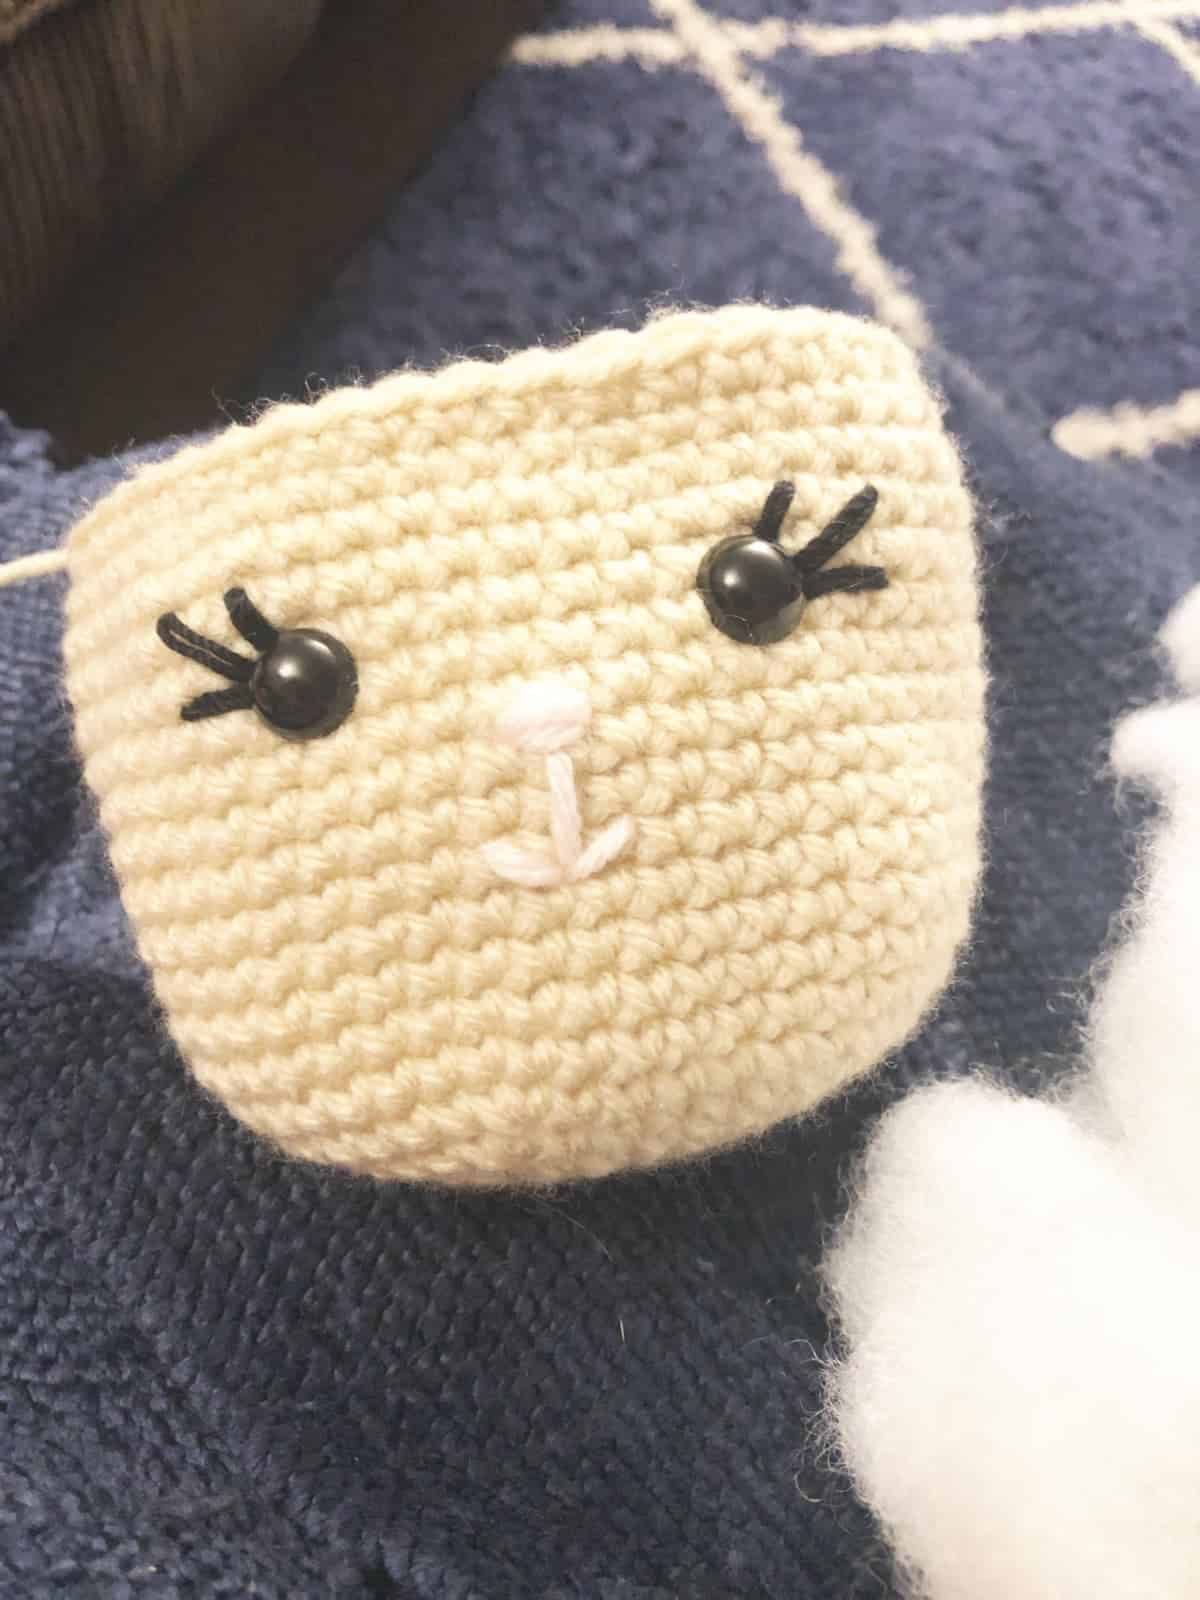 Close up of crochet face embroidery.